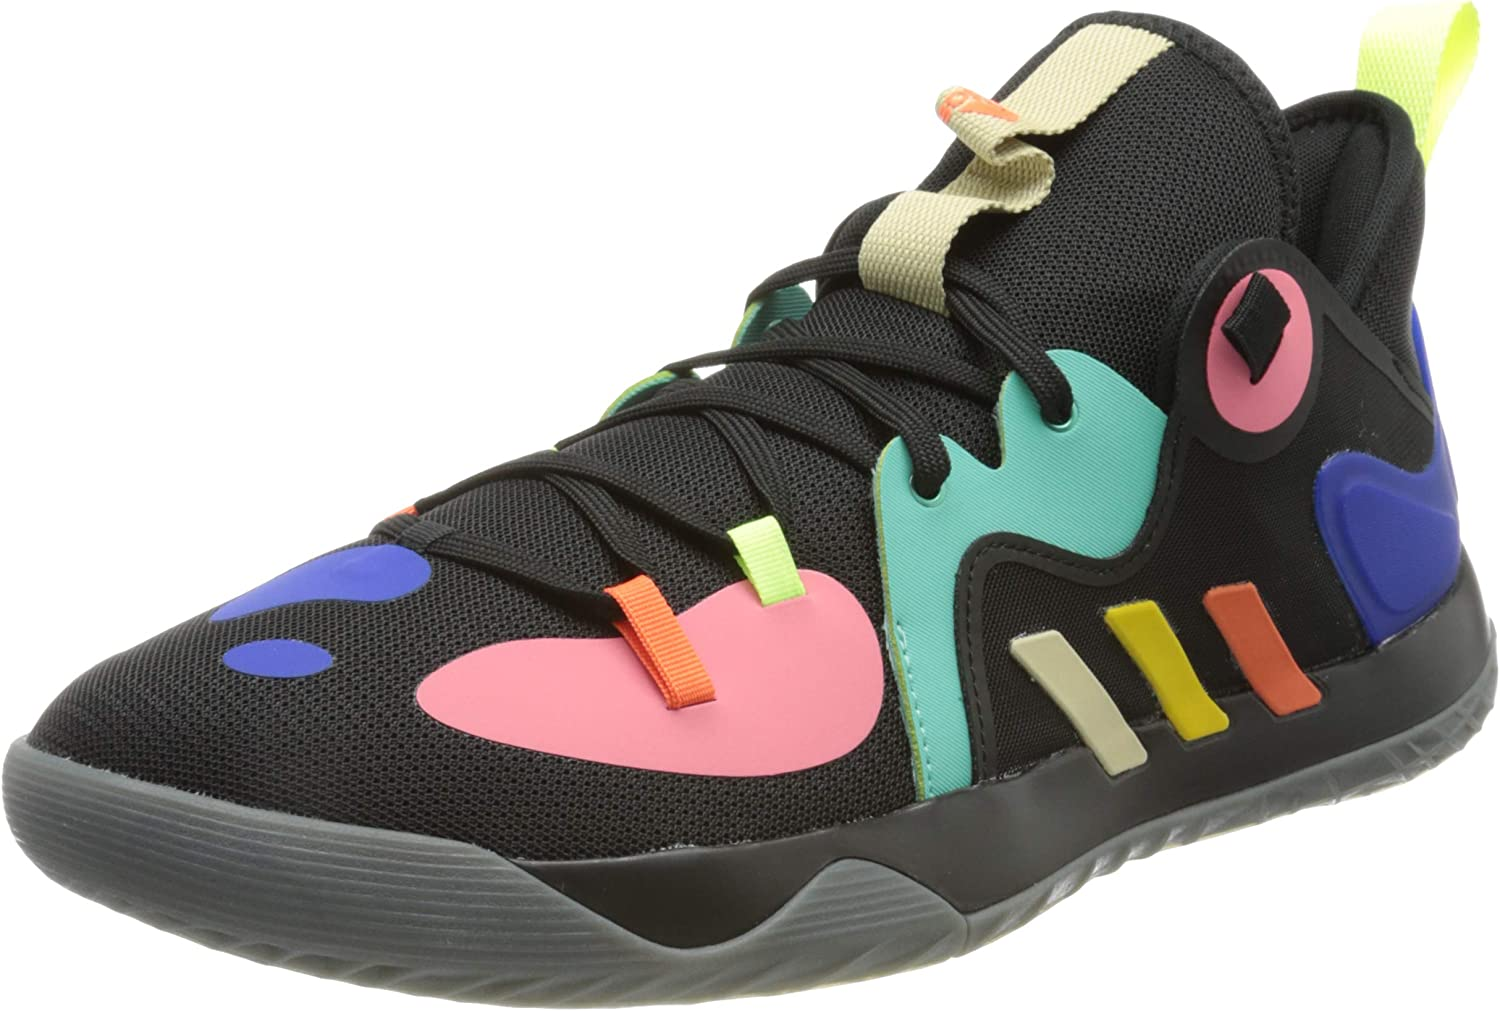 adidas Unisex's Footwear Basketball Shoes Max 47% OFF All stores are sold